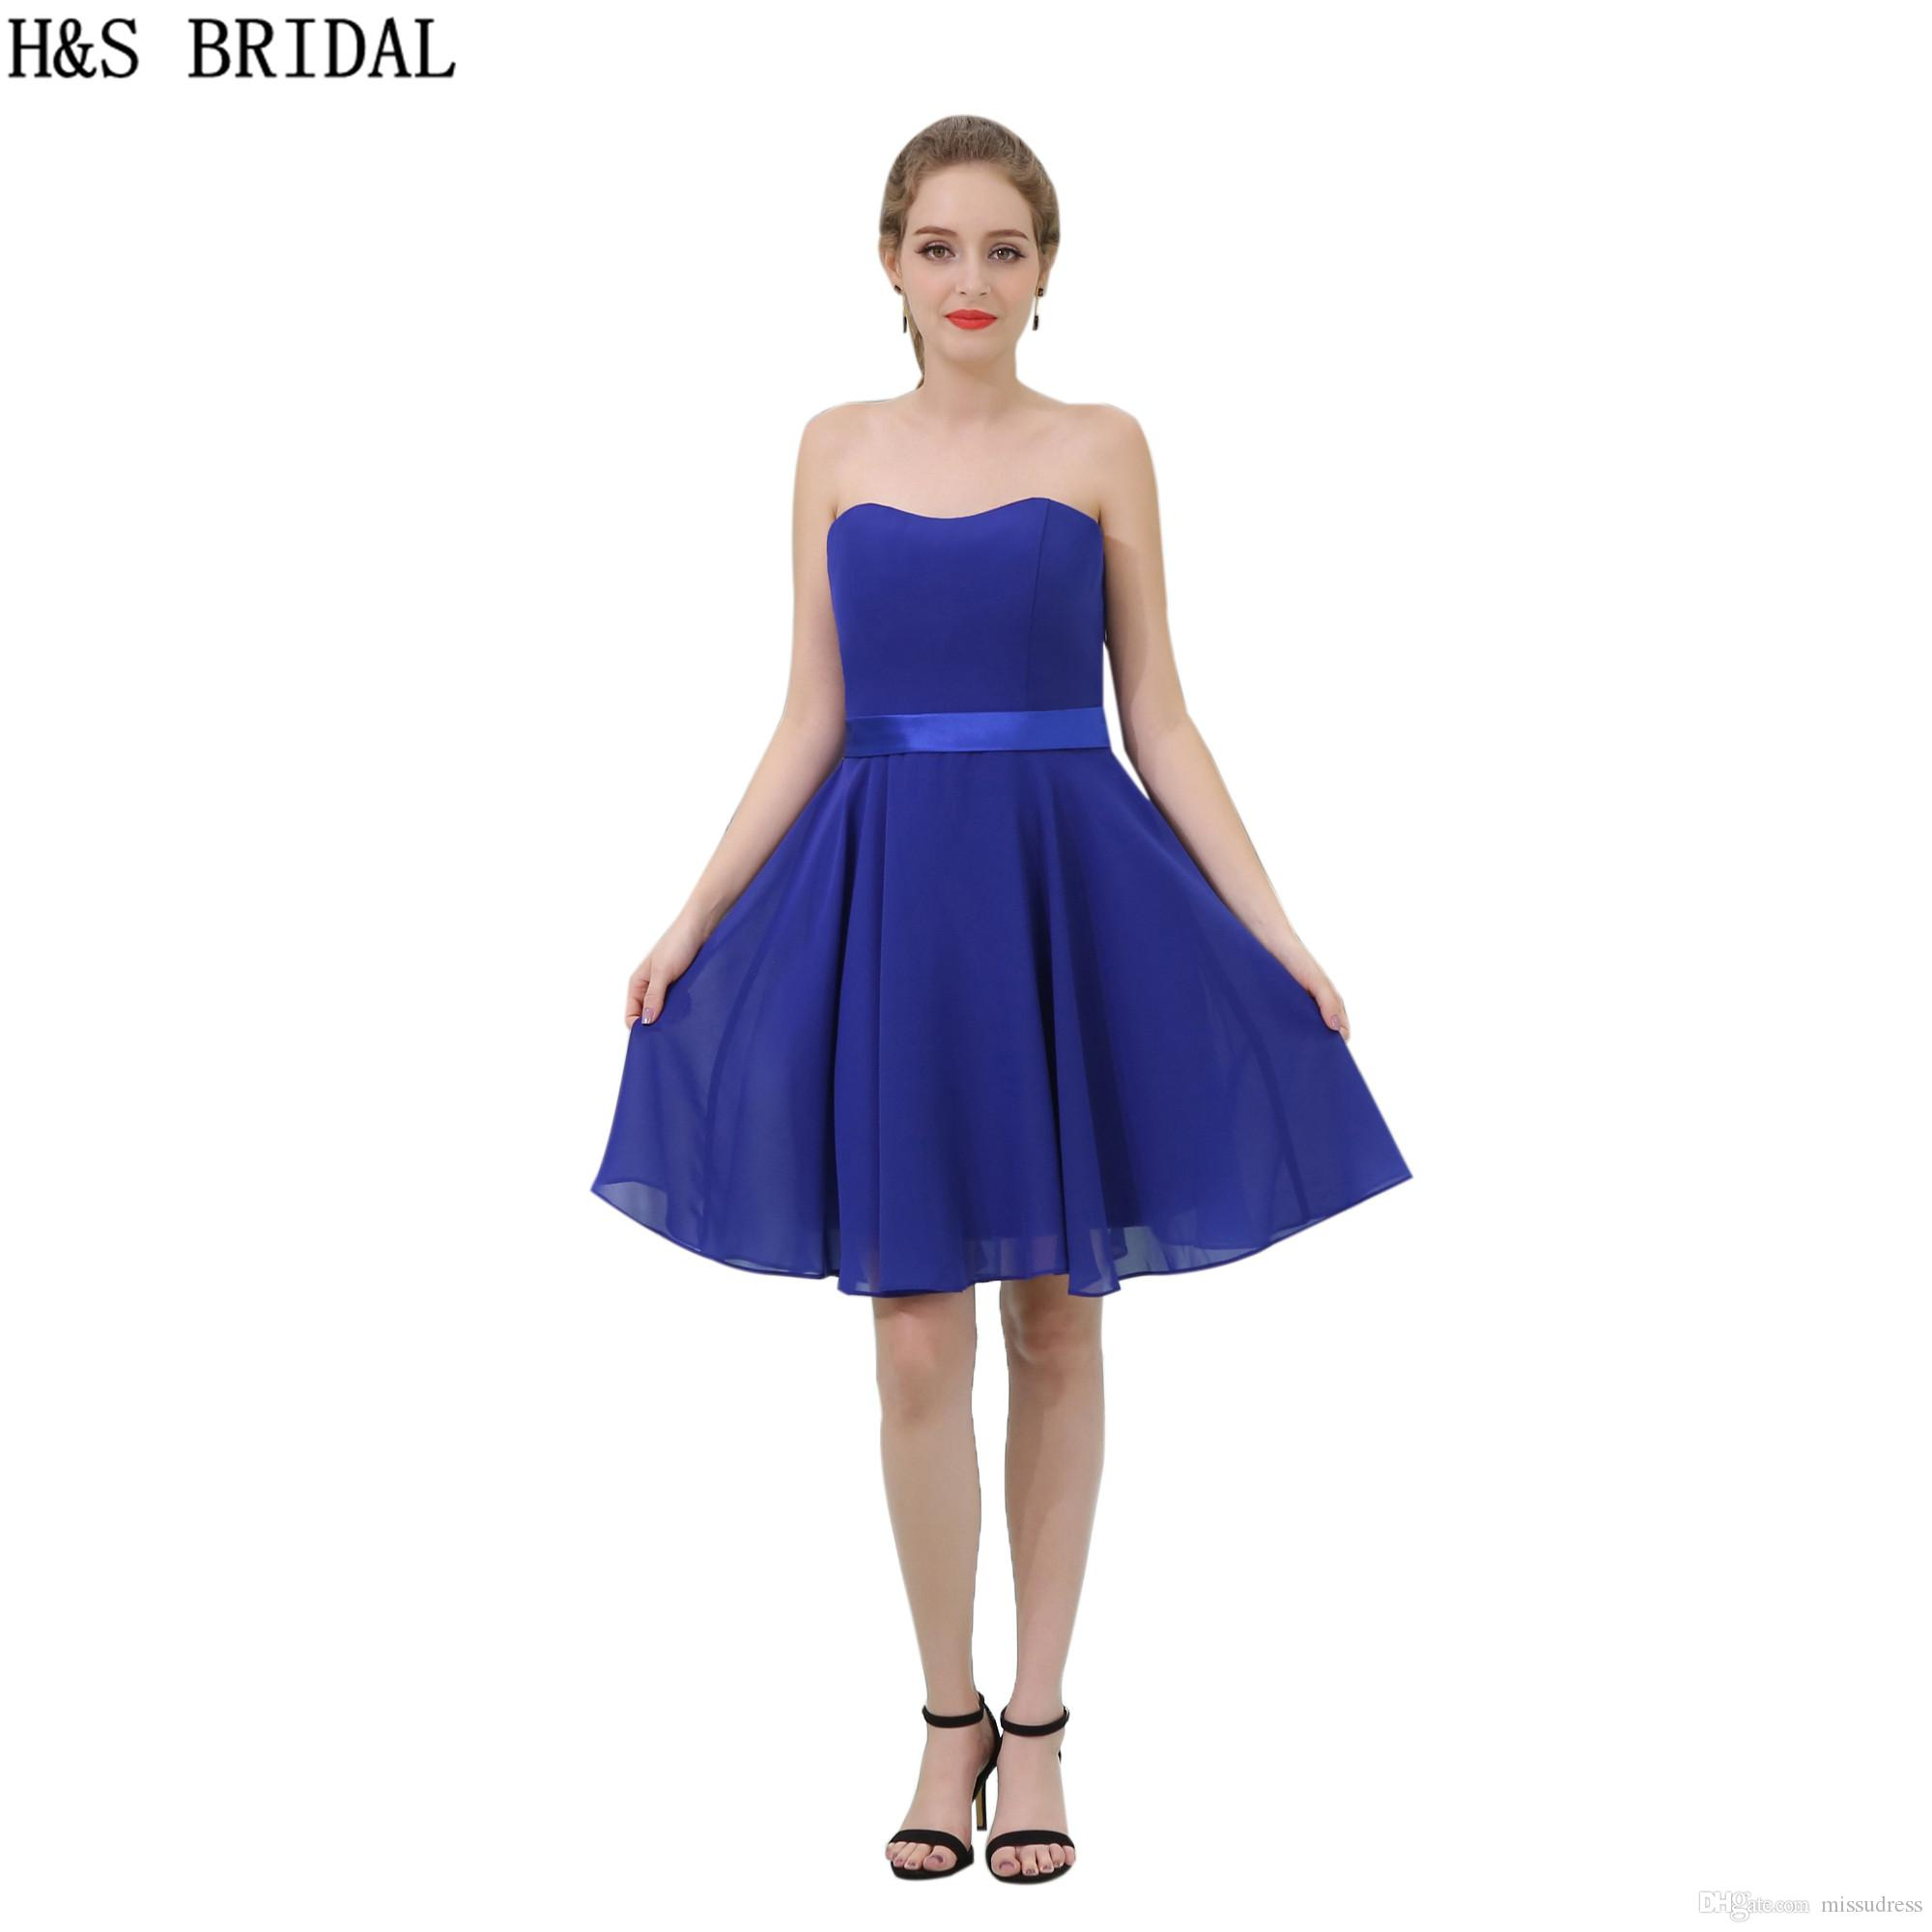 Cheap royal blue chiffon bridesmaid dress knee length simple style cheap royal blue chiffon bridesmaid dress knee length simple style strapless sale party prom dresses b051 cheap bridesmaid dress chiffon short bridesmaid ombrellifo Image collections